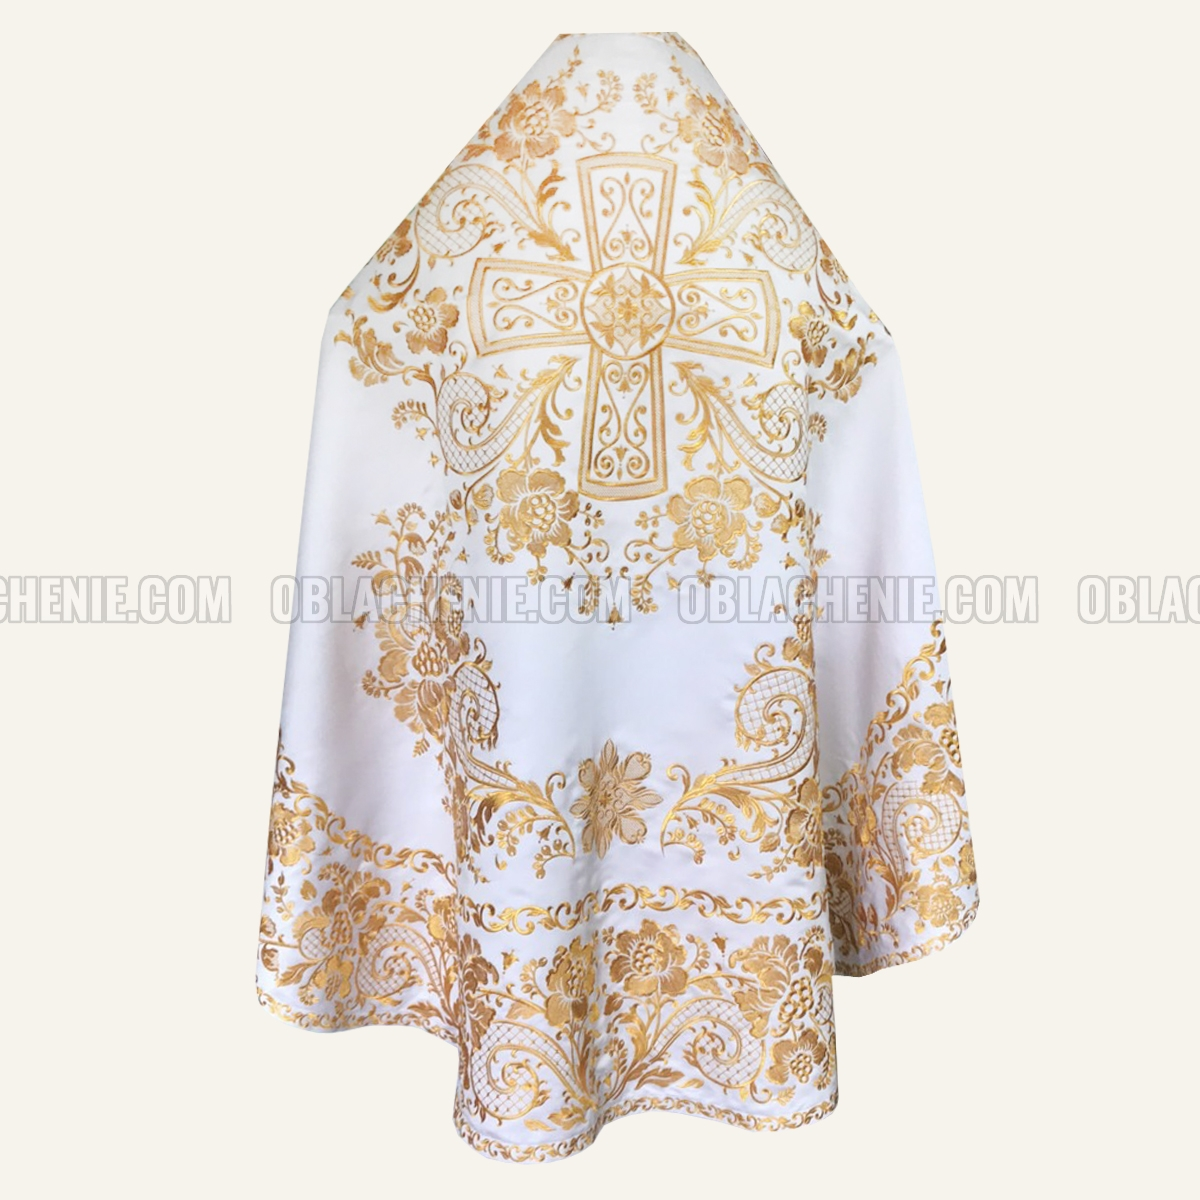 Embroidered priest's vestments 10208